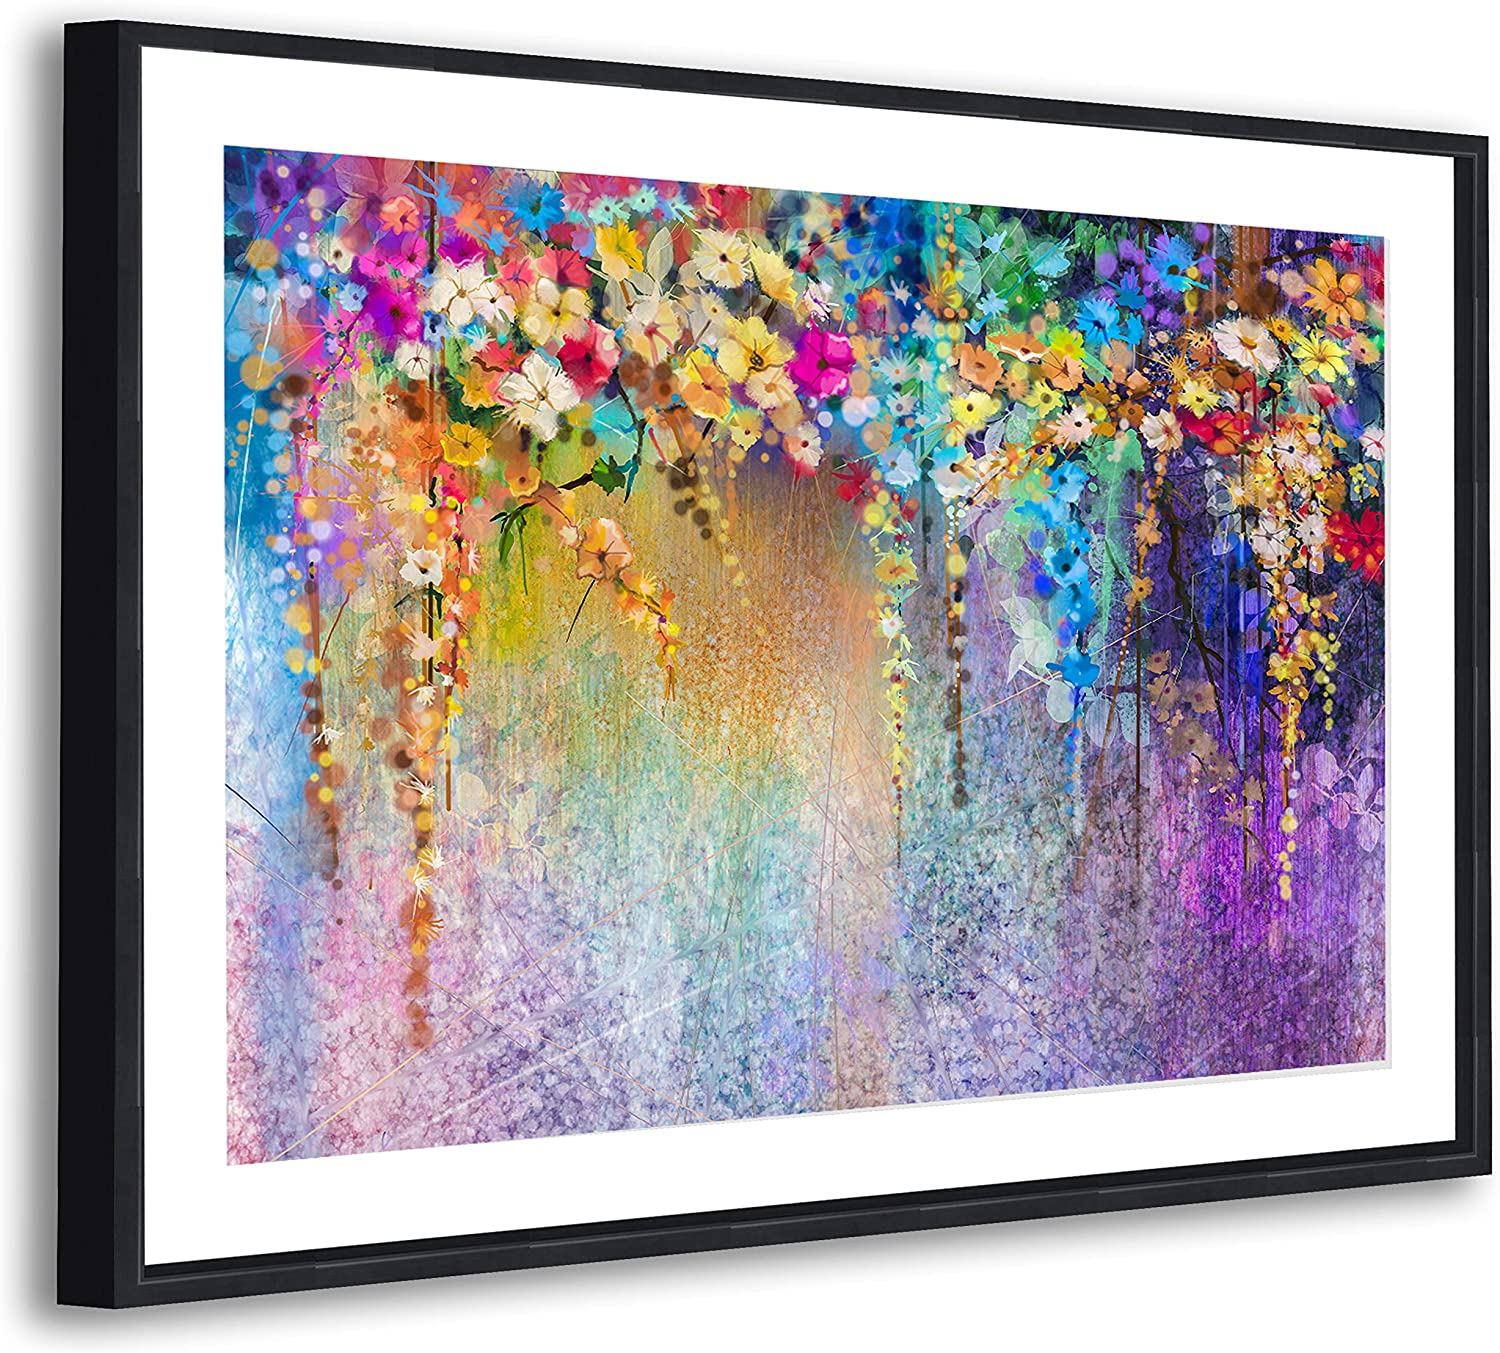 Colourful Flowers Modern Abstract Framed Wall Art Large Picture Prints Amazon Co Uk Kitchen Home